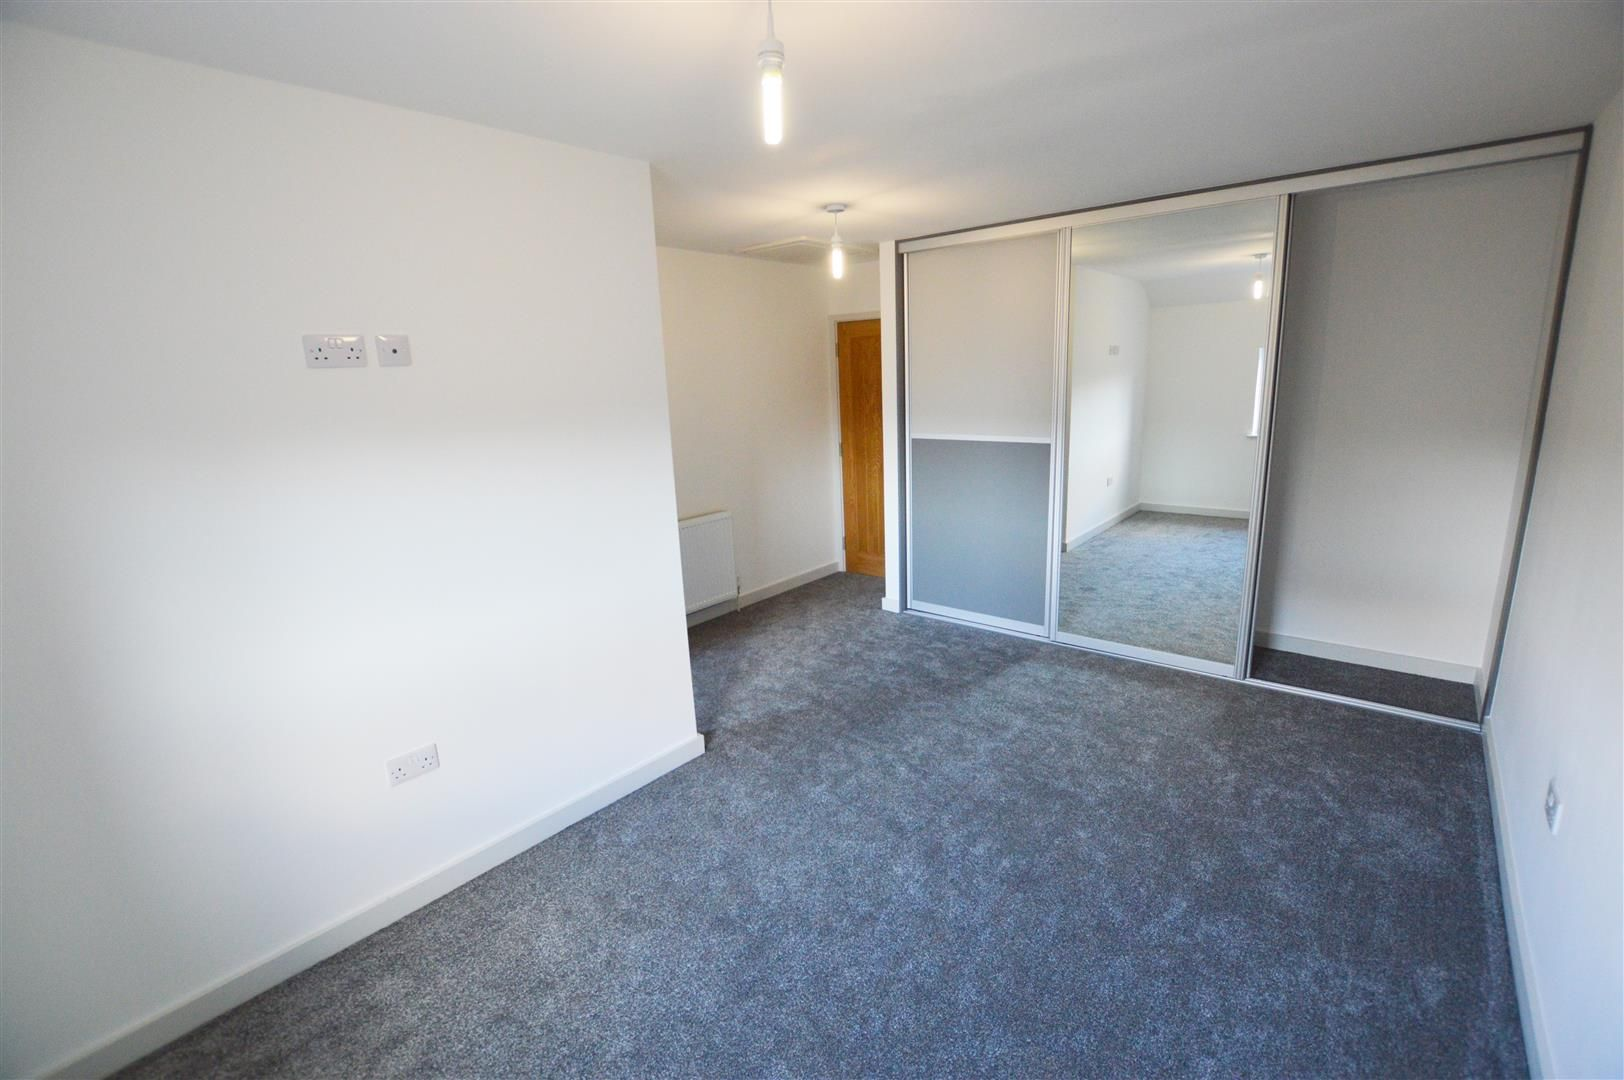 3 bed terraced for sale in Leominster  - Property Image 9